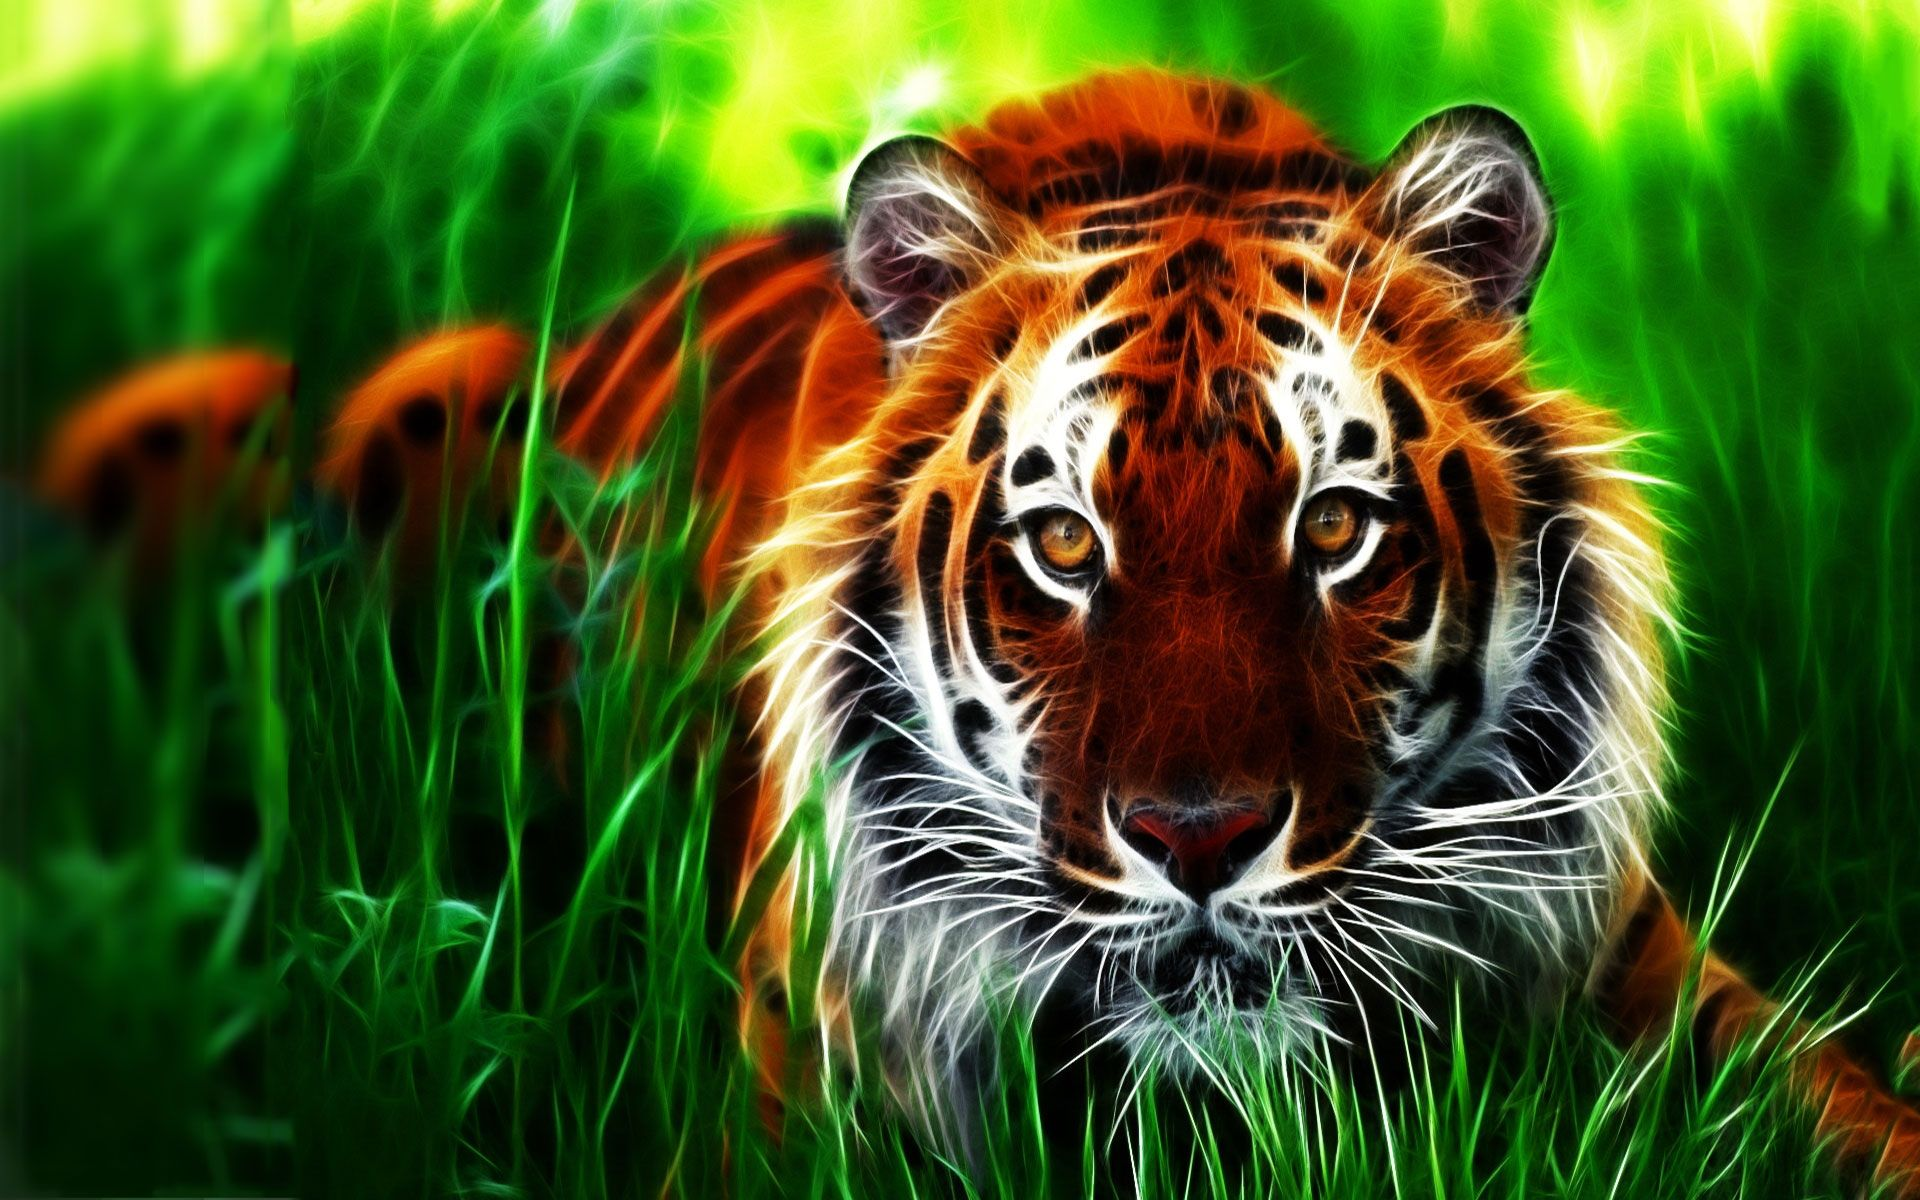 Animals Wallpaper 3d Hd 2 0 Apk Download: Tiger Wallpaper 3d For Iphone